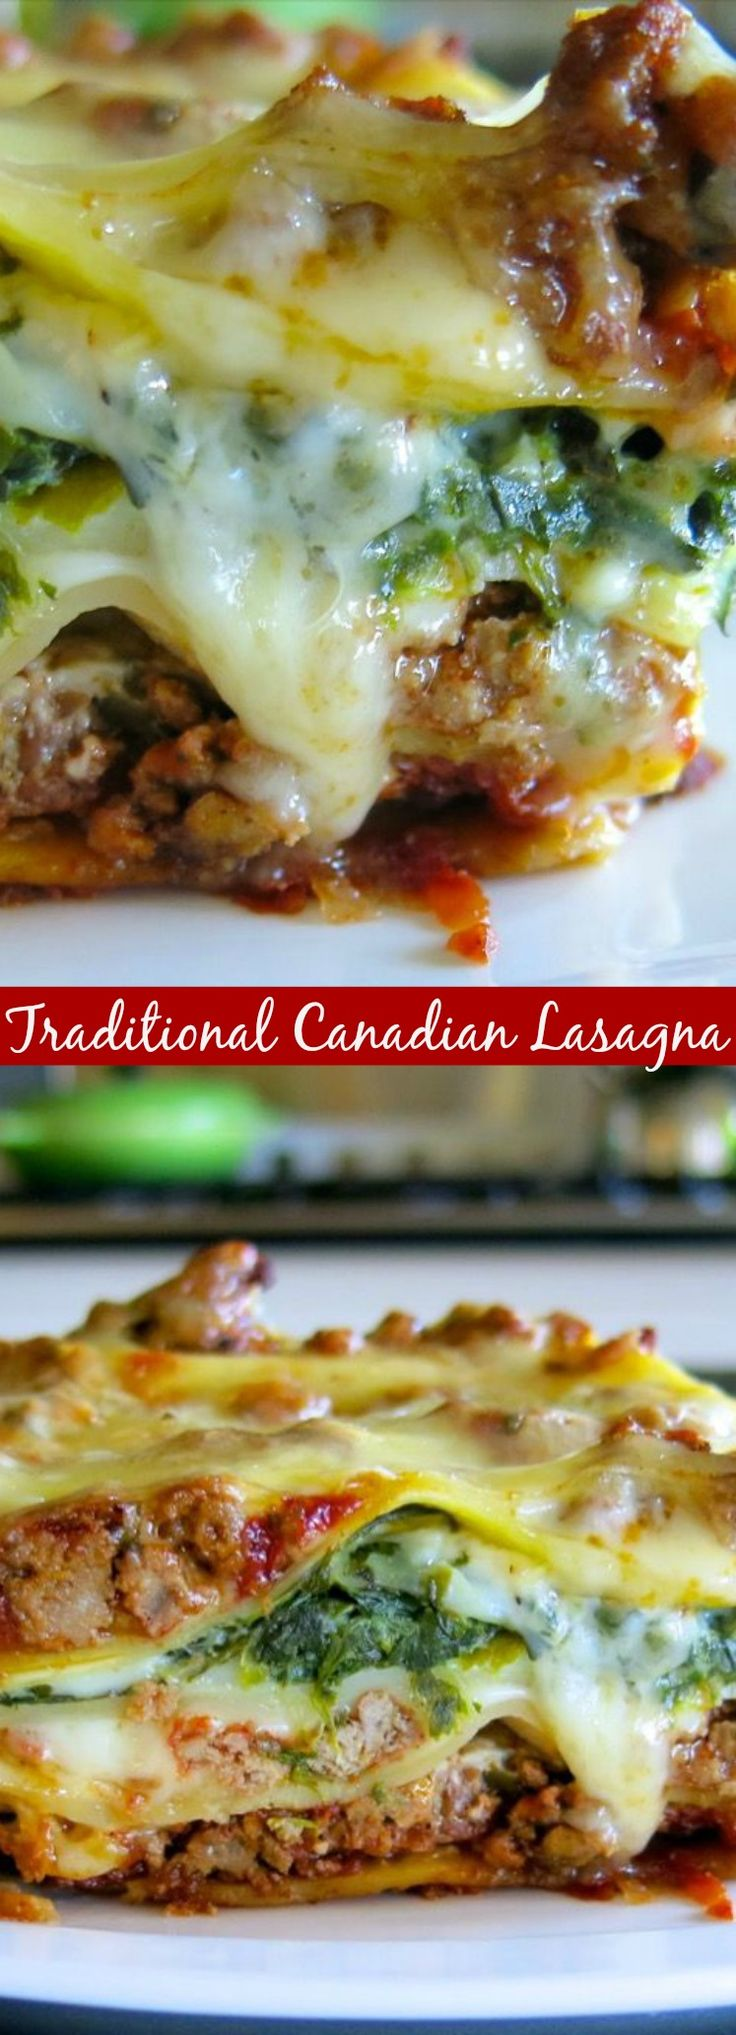 Traditional Canadian Lasagna - An exceptionally delicious lasagna recipe!